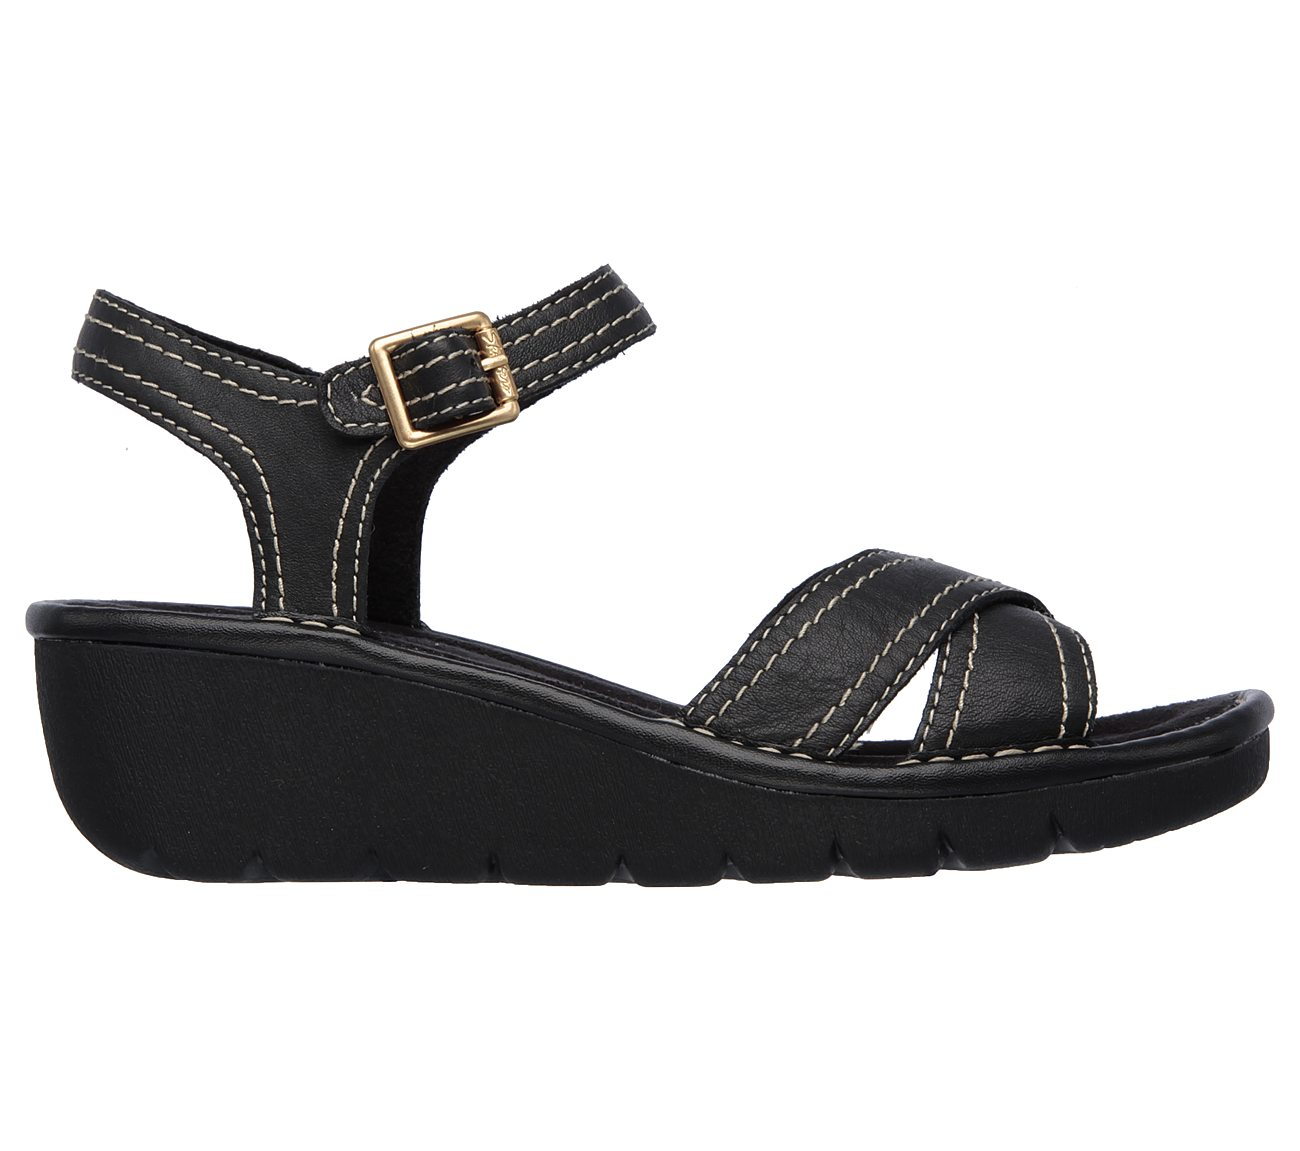 d50f58fc8e7b Buy SKECHERS Cameo - Faceted Slide Sandals Shoes only  63.00